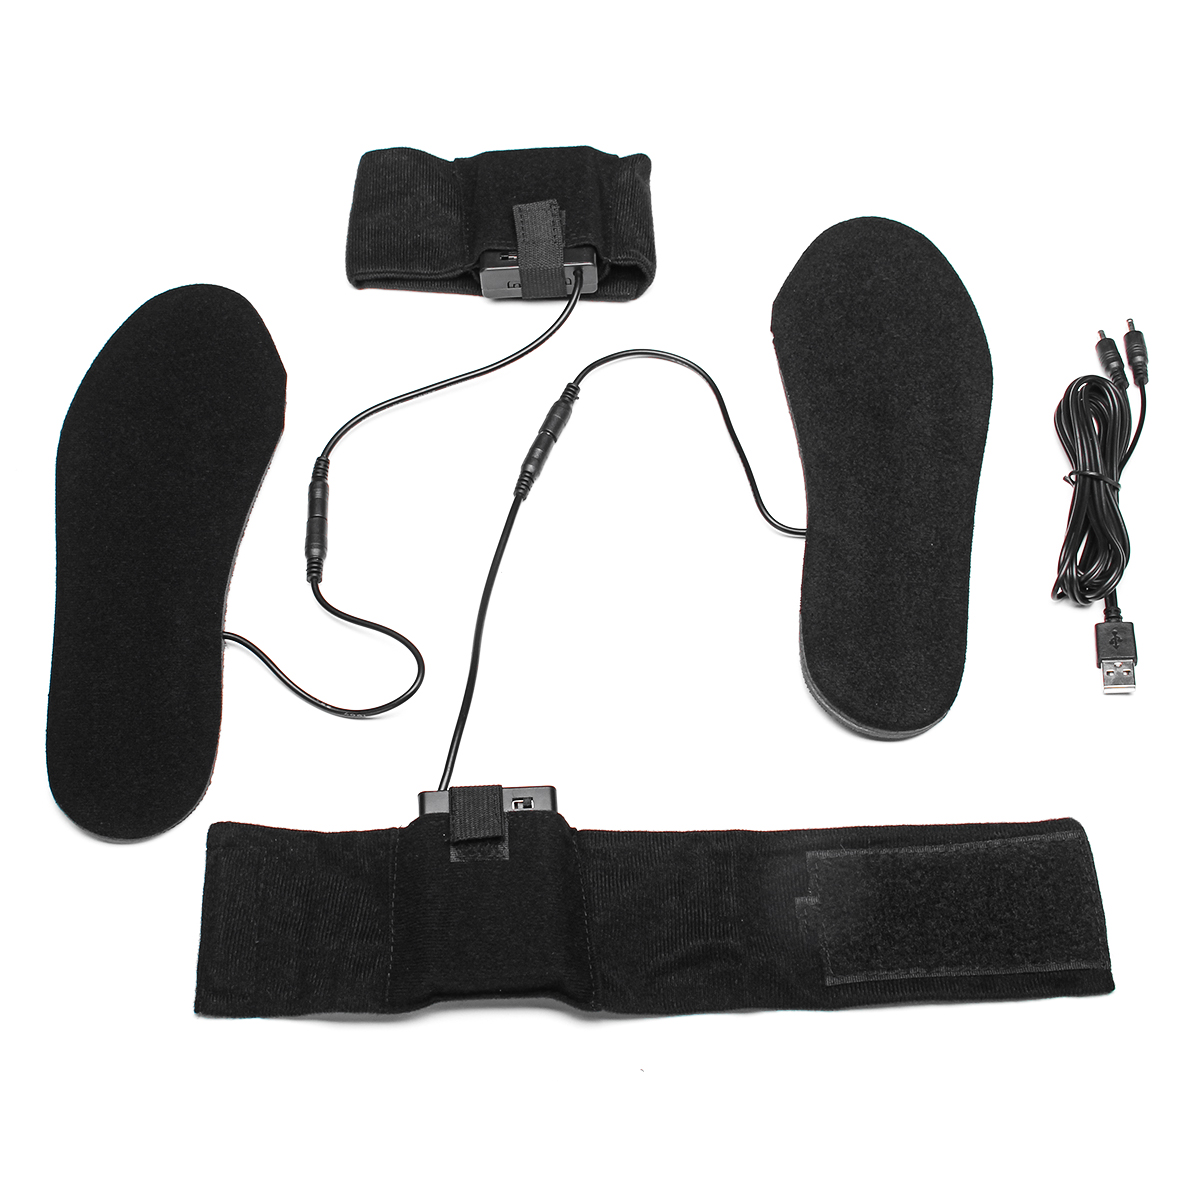 4.5V USB Heated Shoe Insole Electric Battery Powered Thermal Foot Toe Warmer Boot Shoes